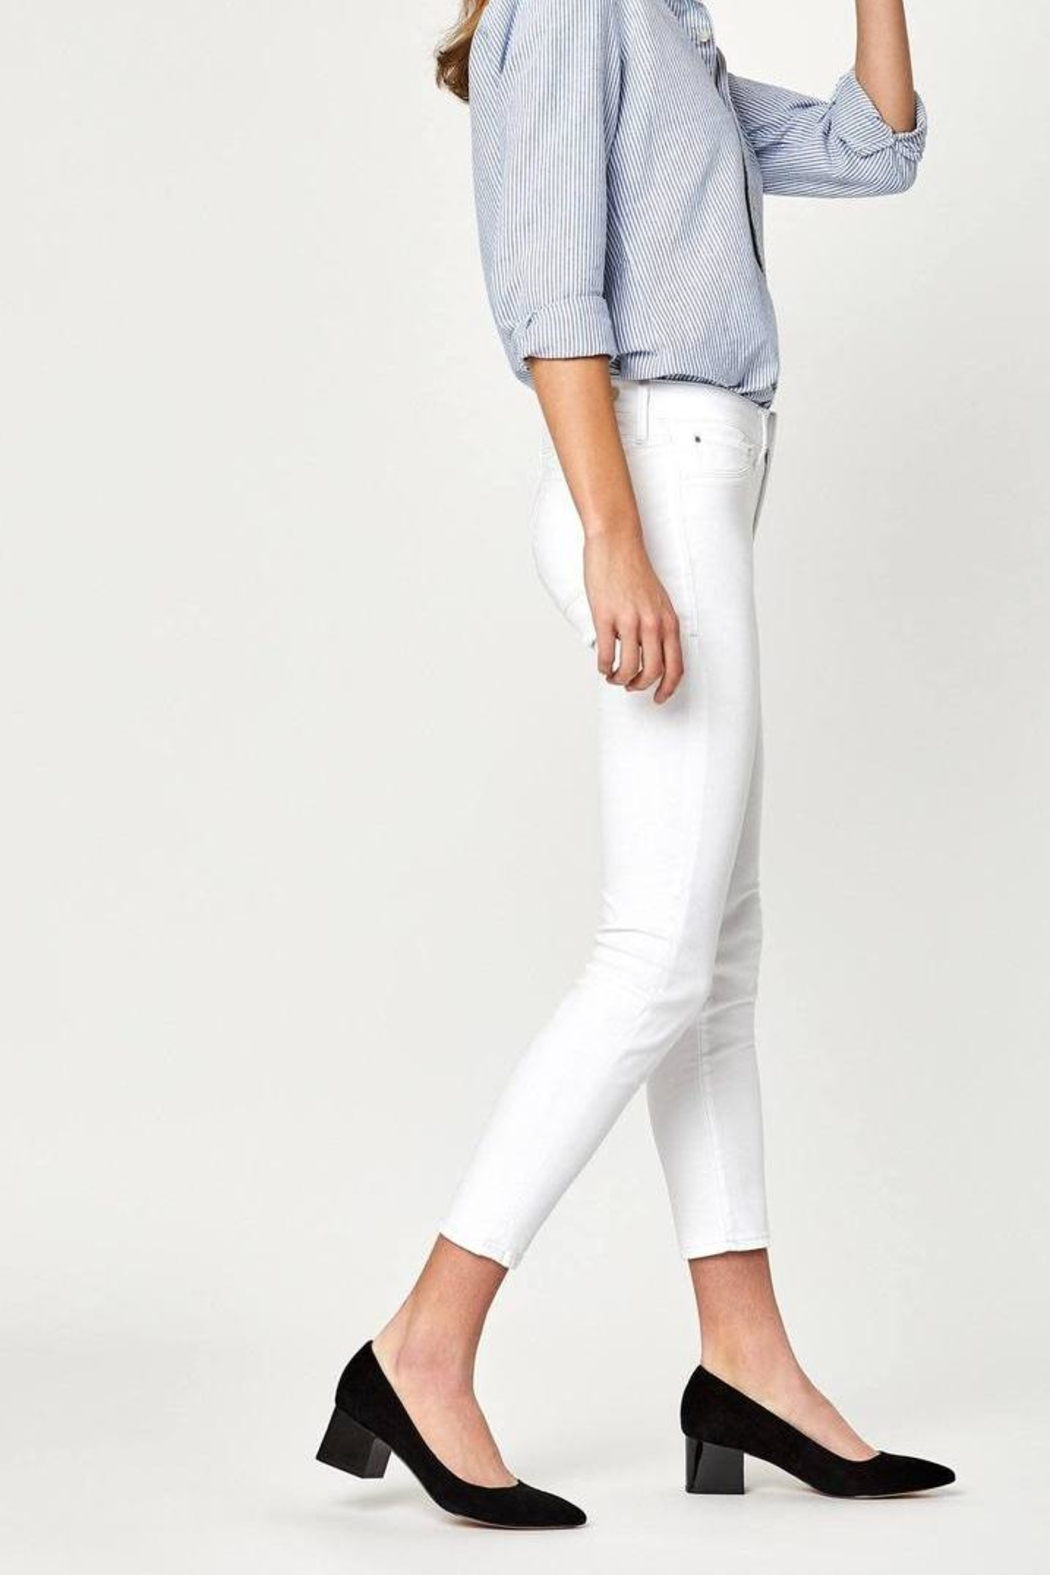 Mavi Jeans White Ankle Crop - Back Cropped Image